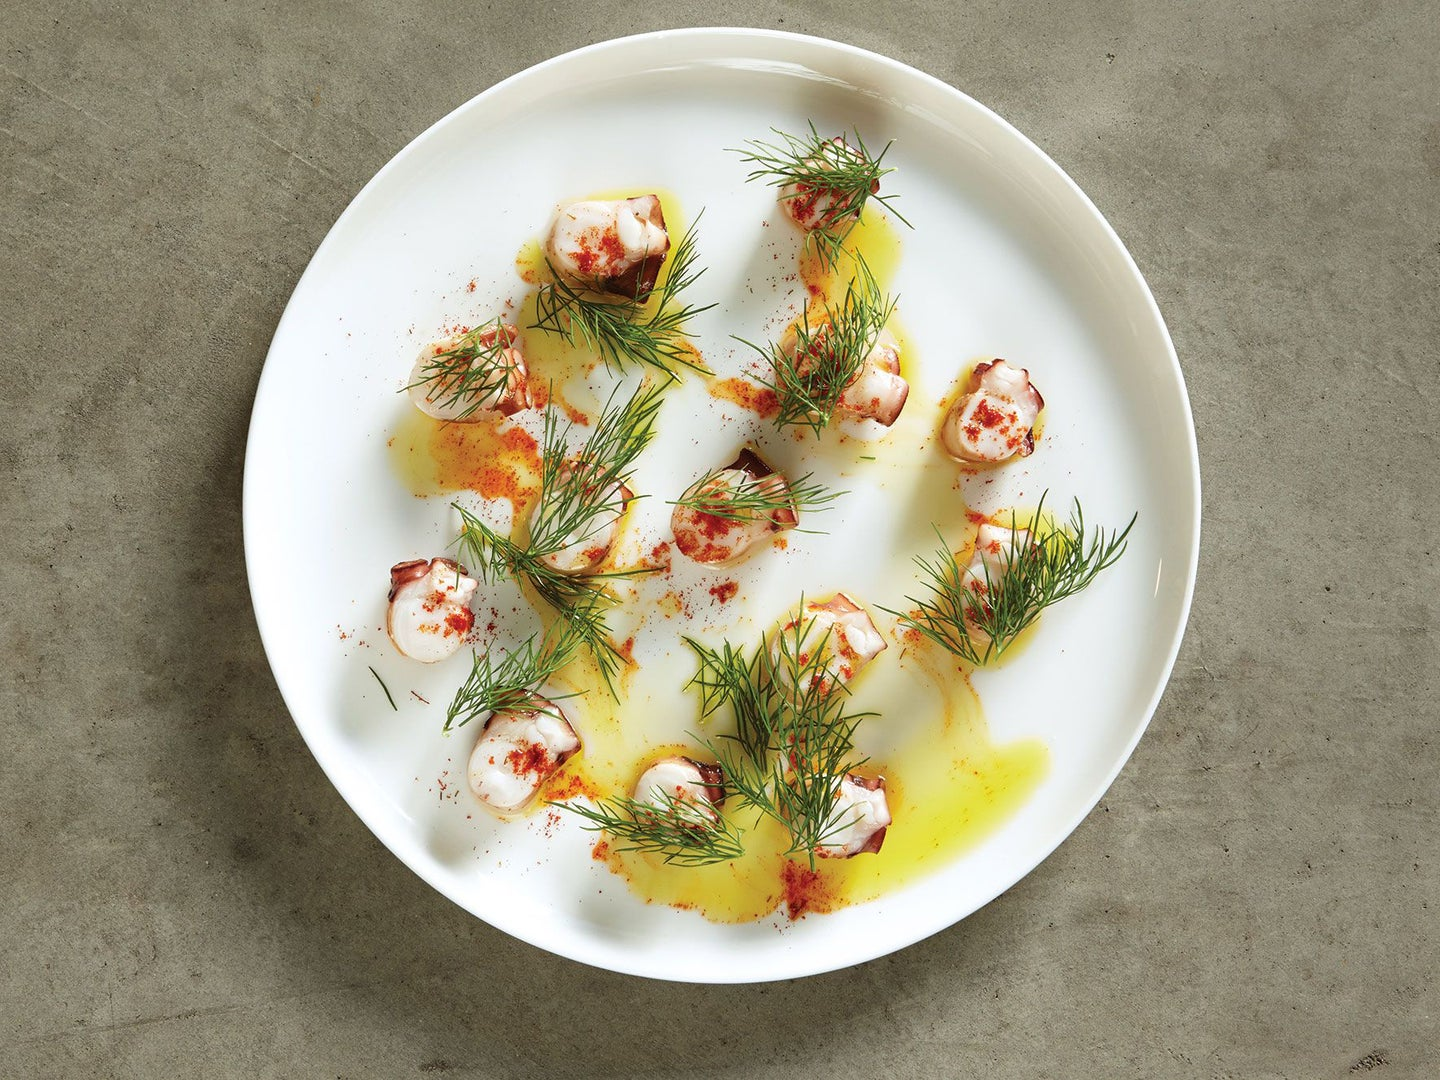 Seared Octopus with Fennel Pollen and Smoked Paprika